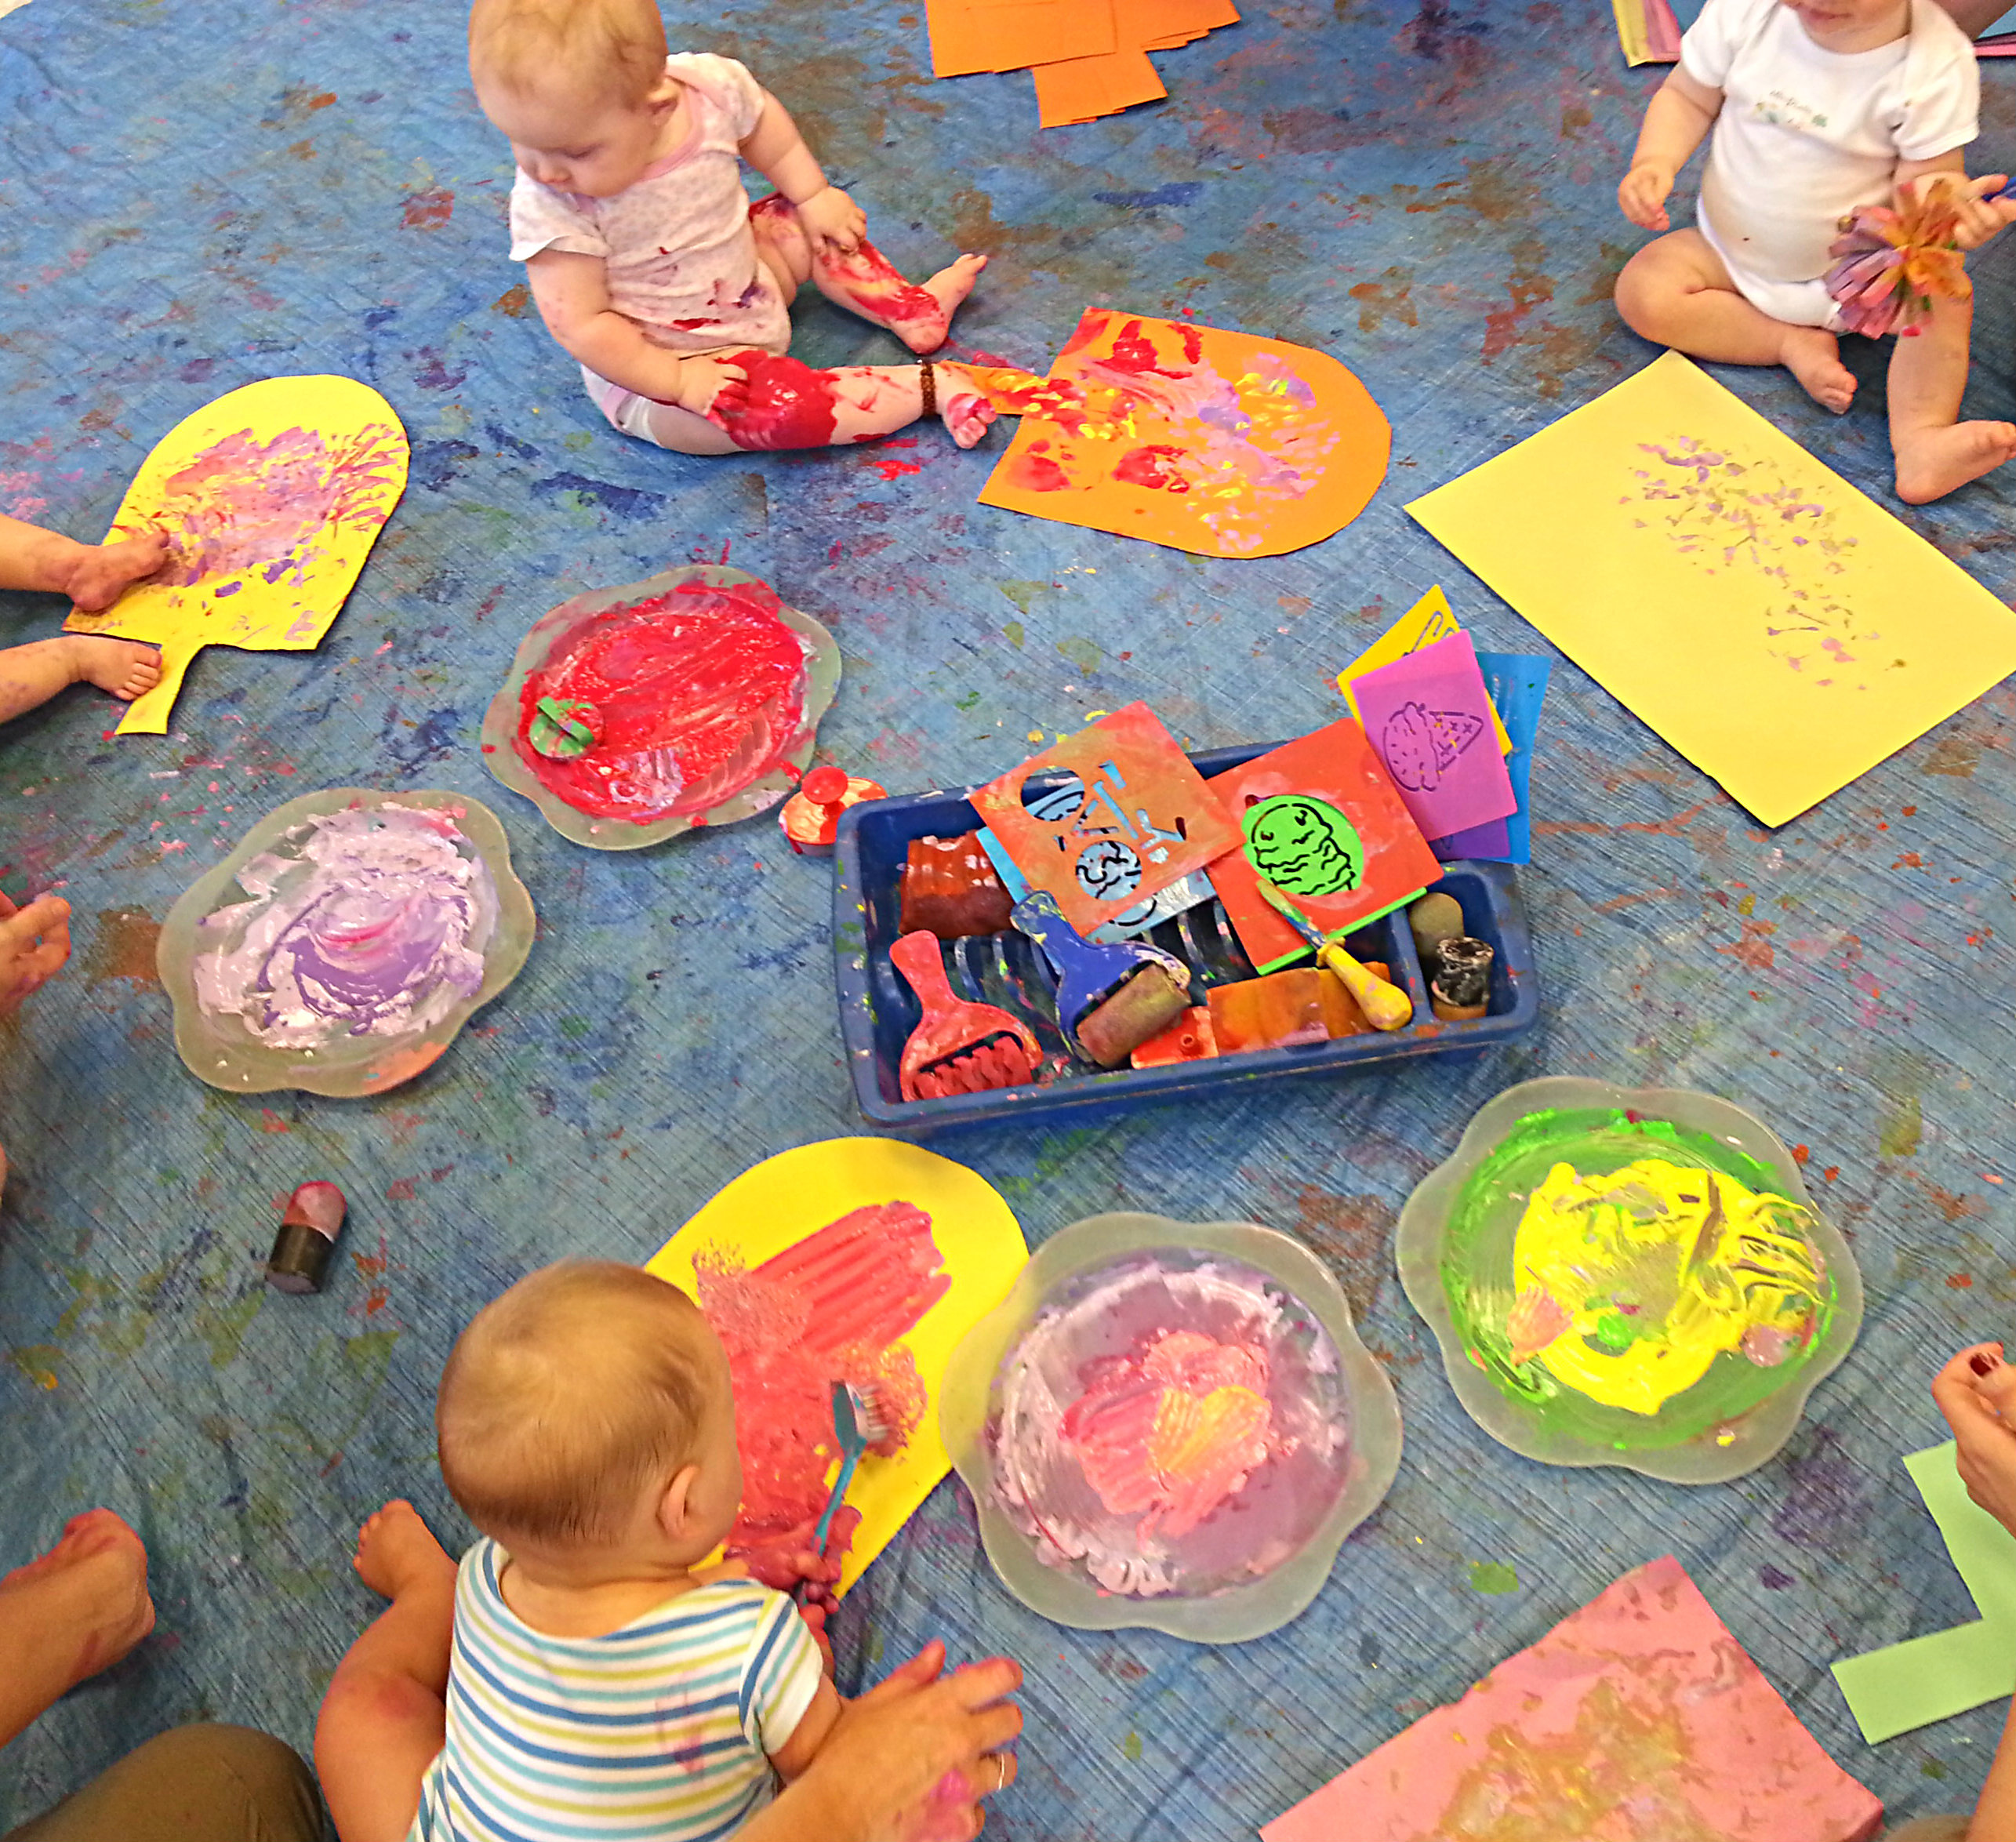 10 Reasons Why Art And Creative Play Activities Are So Important For